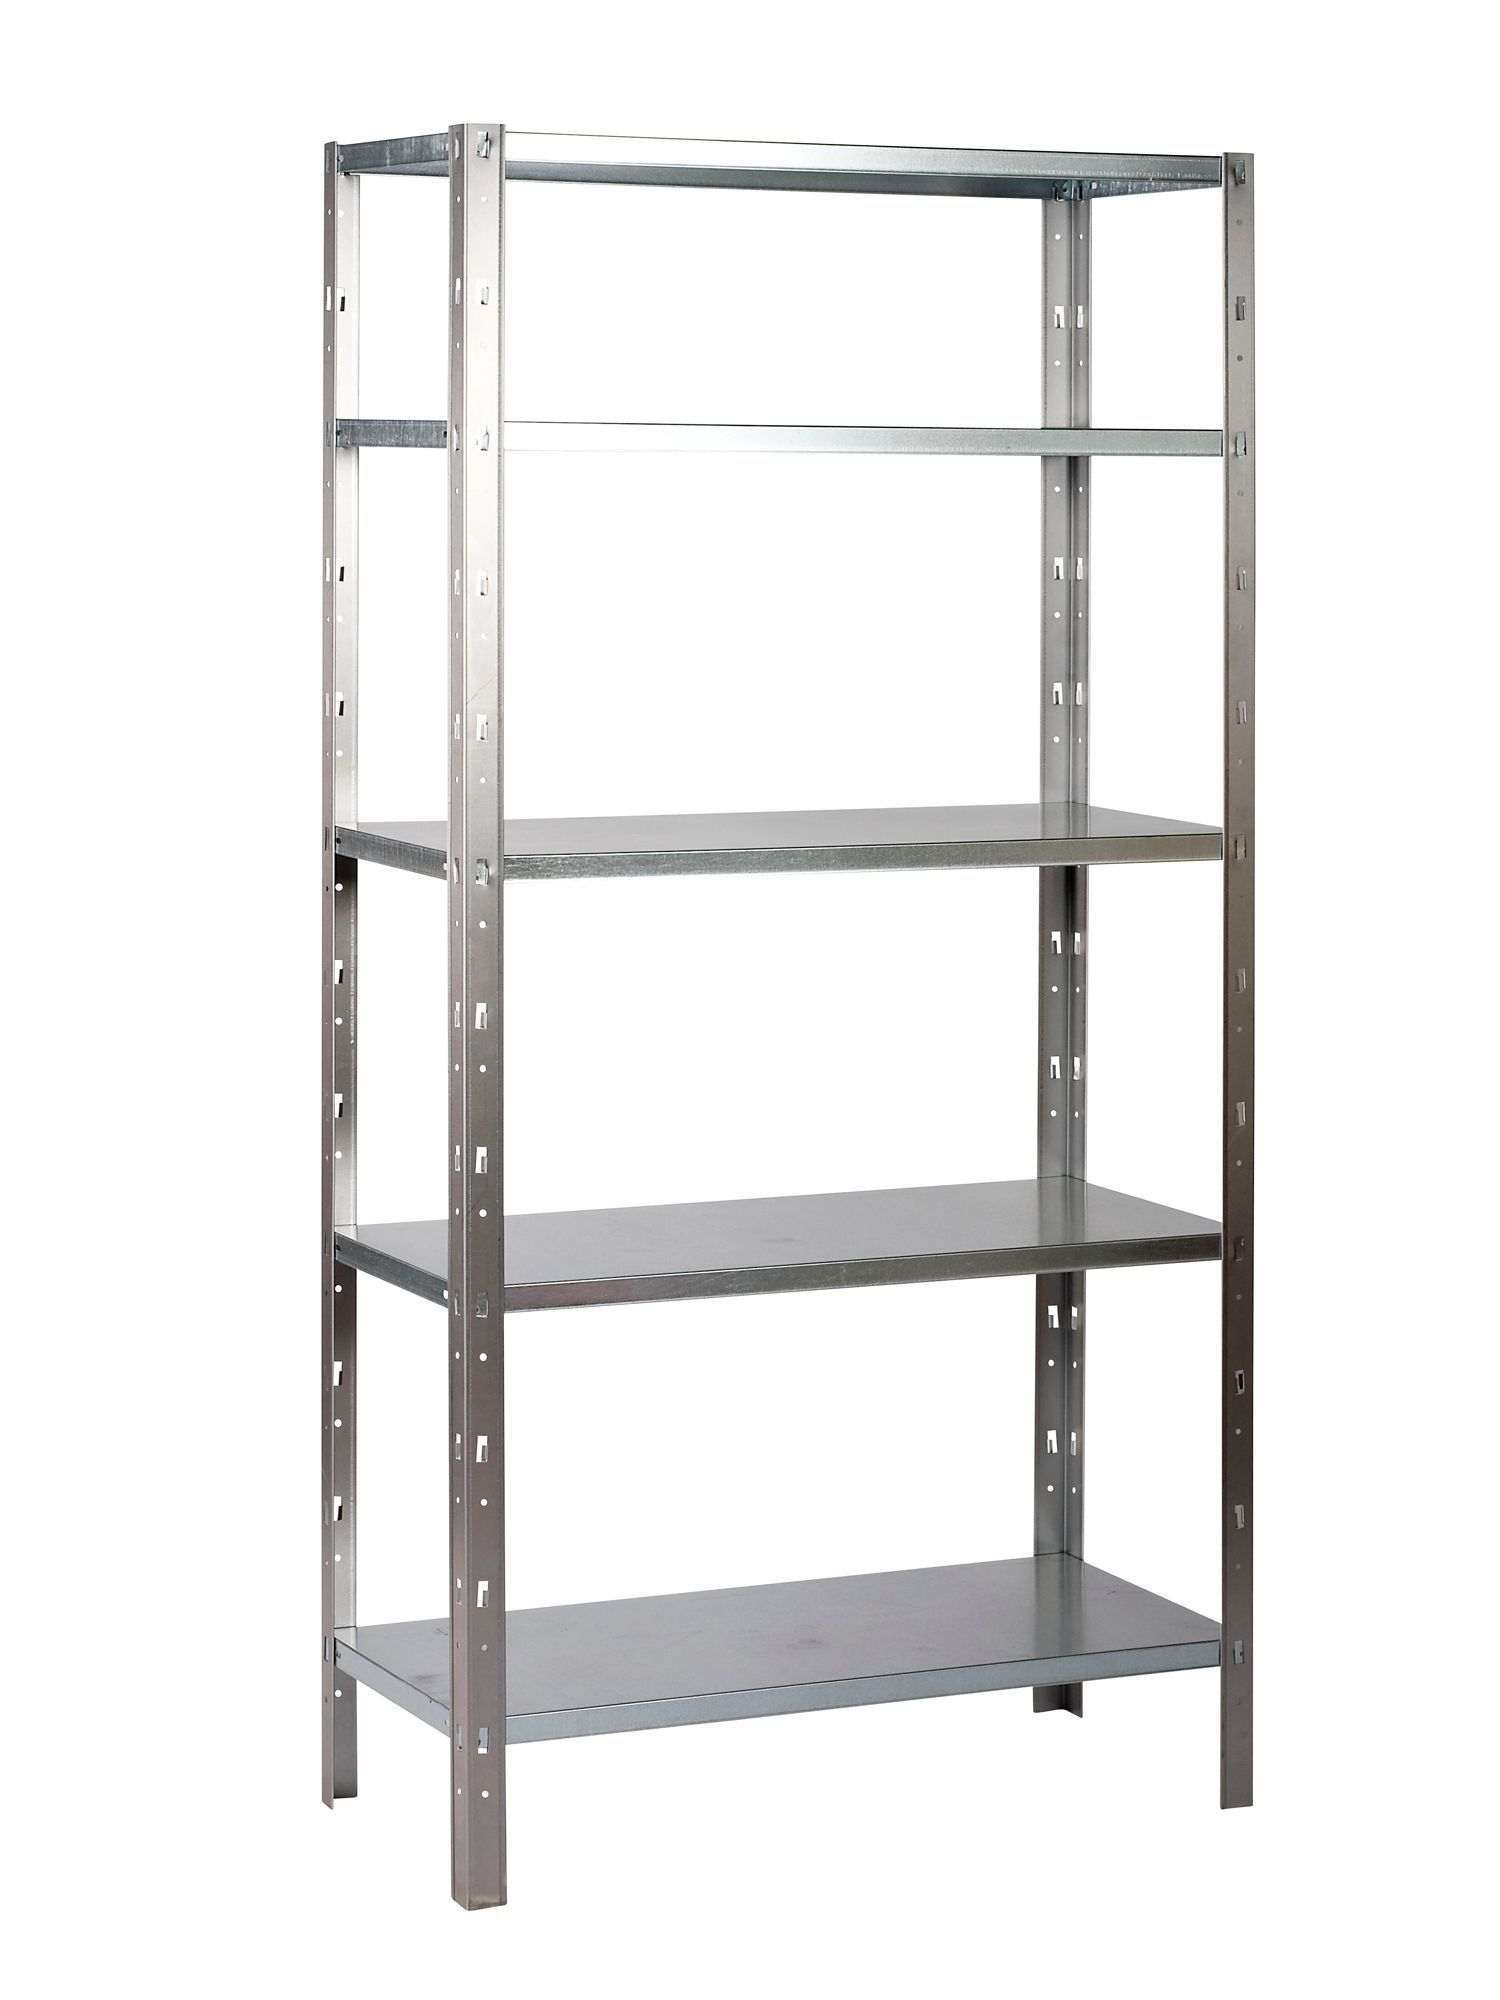 B Amp Q 5 Shelf Steel Shelving Unit Departments Diy At B Amp Q